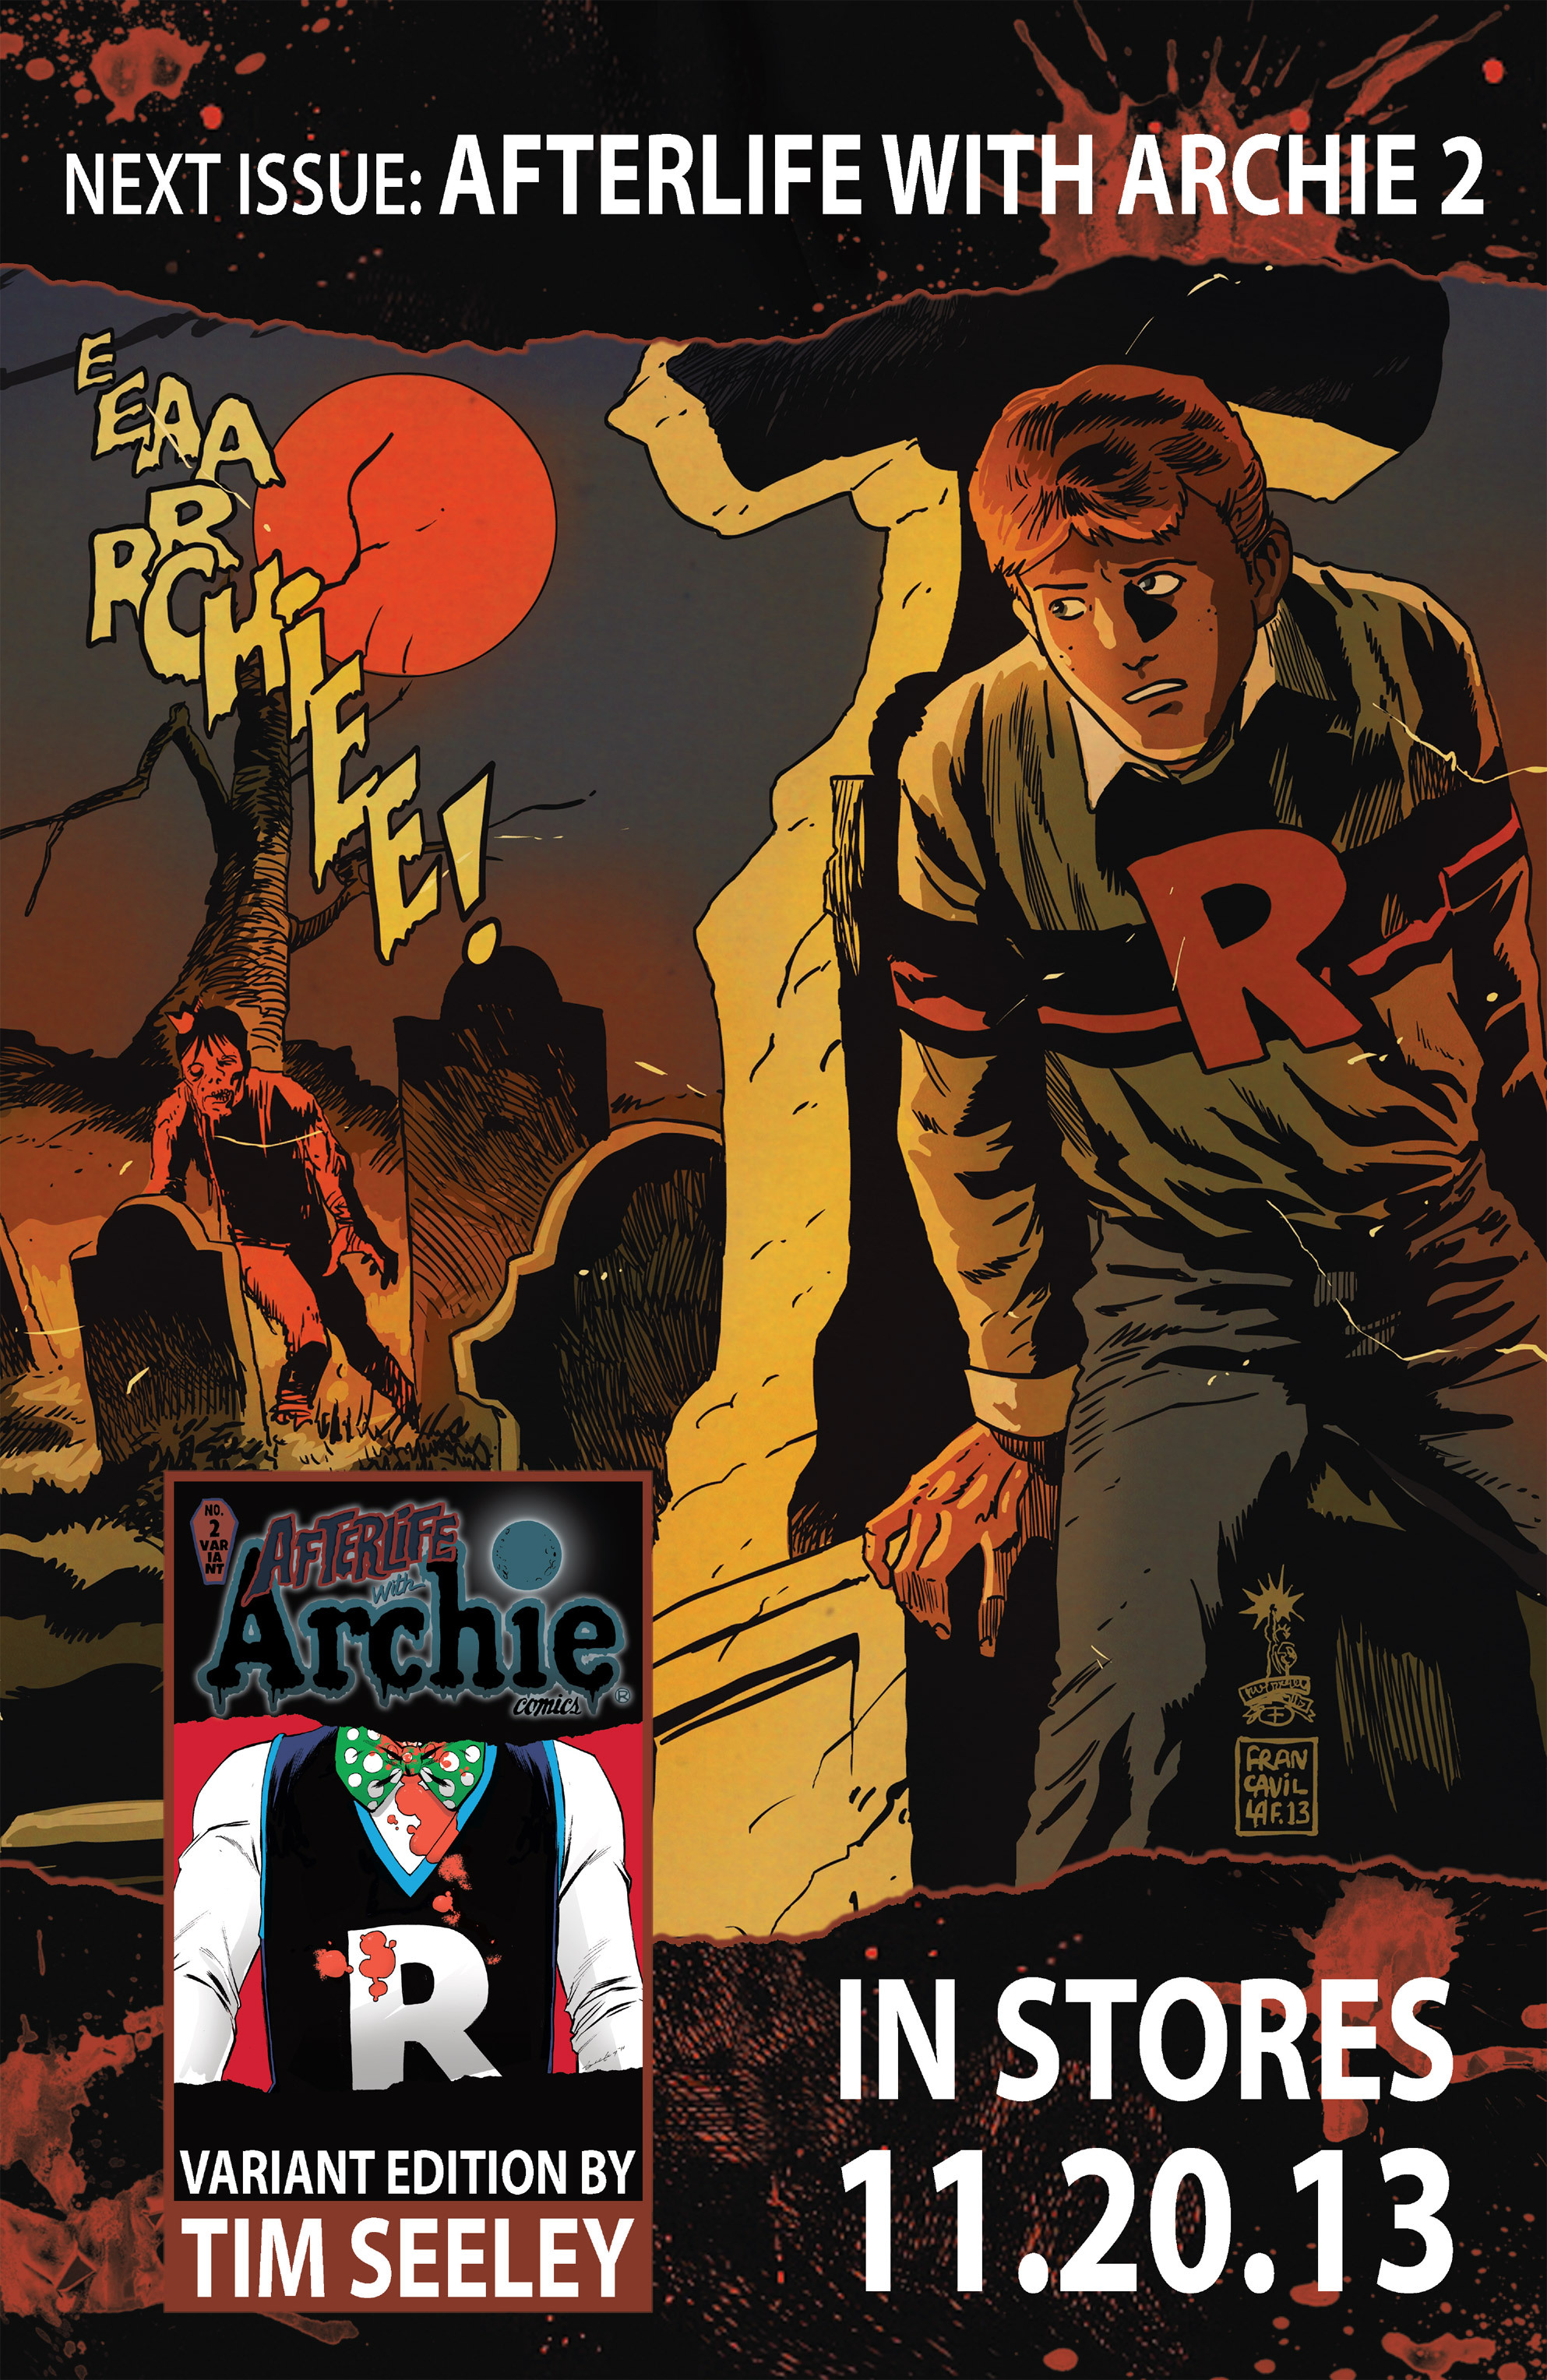 Read online Afterlife with Archie comic -  Issue #1 - 31